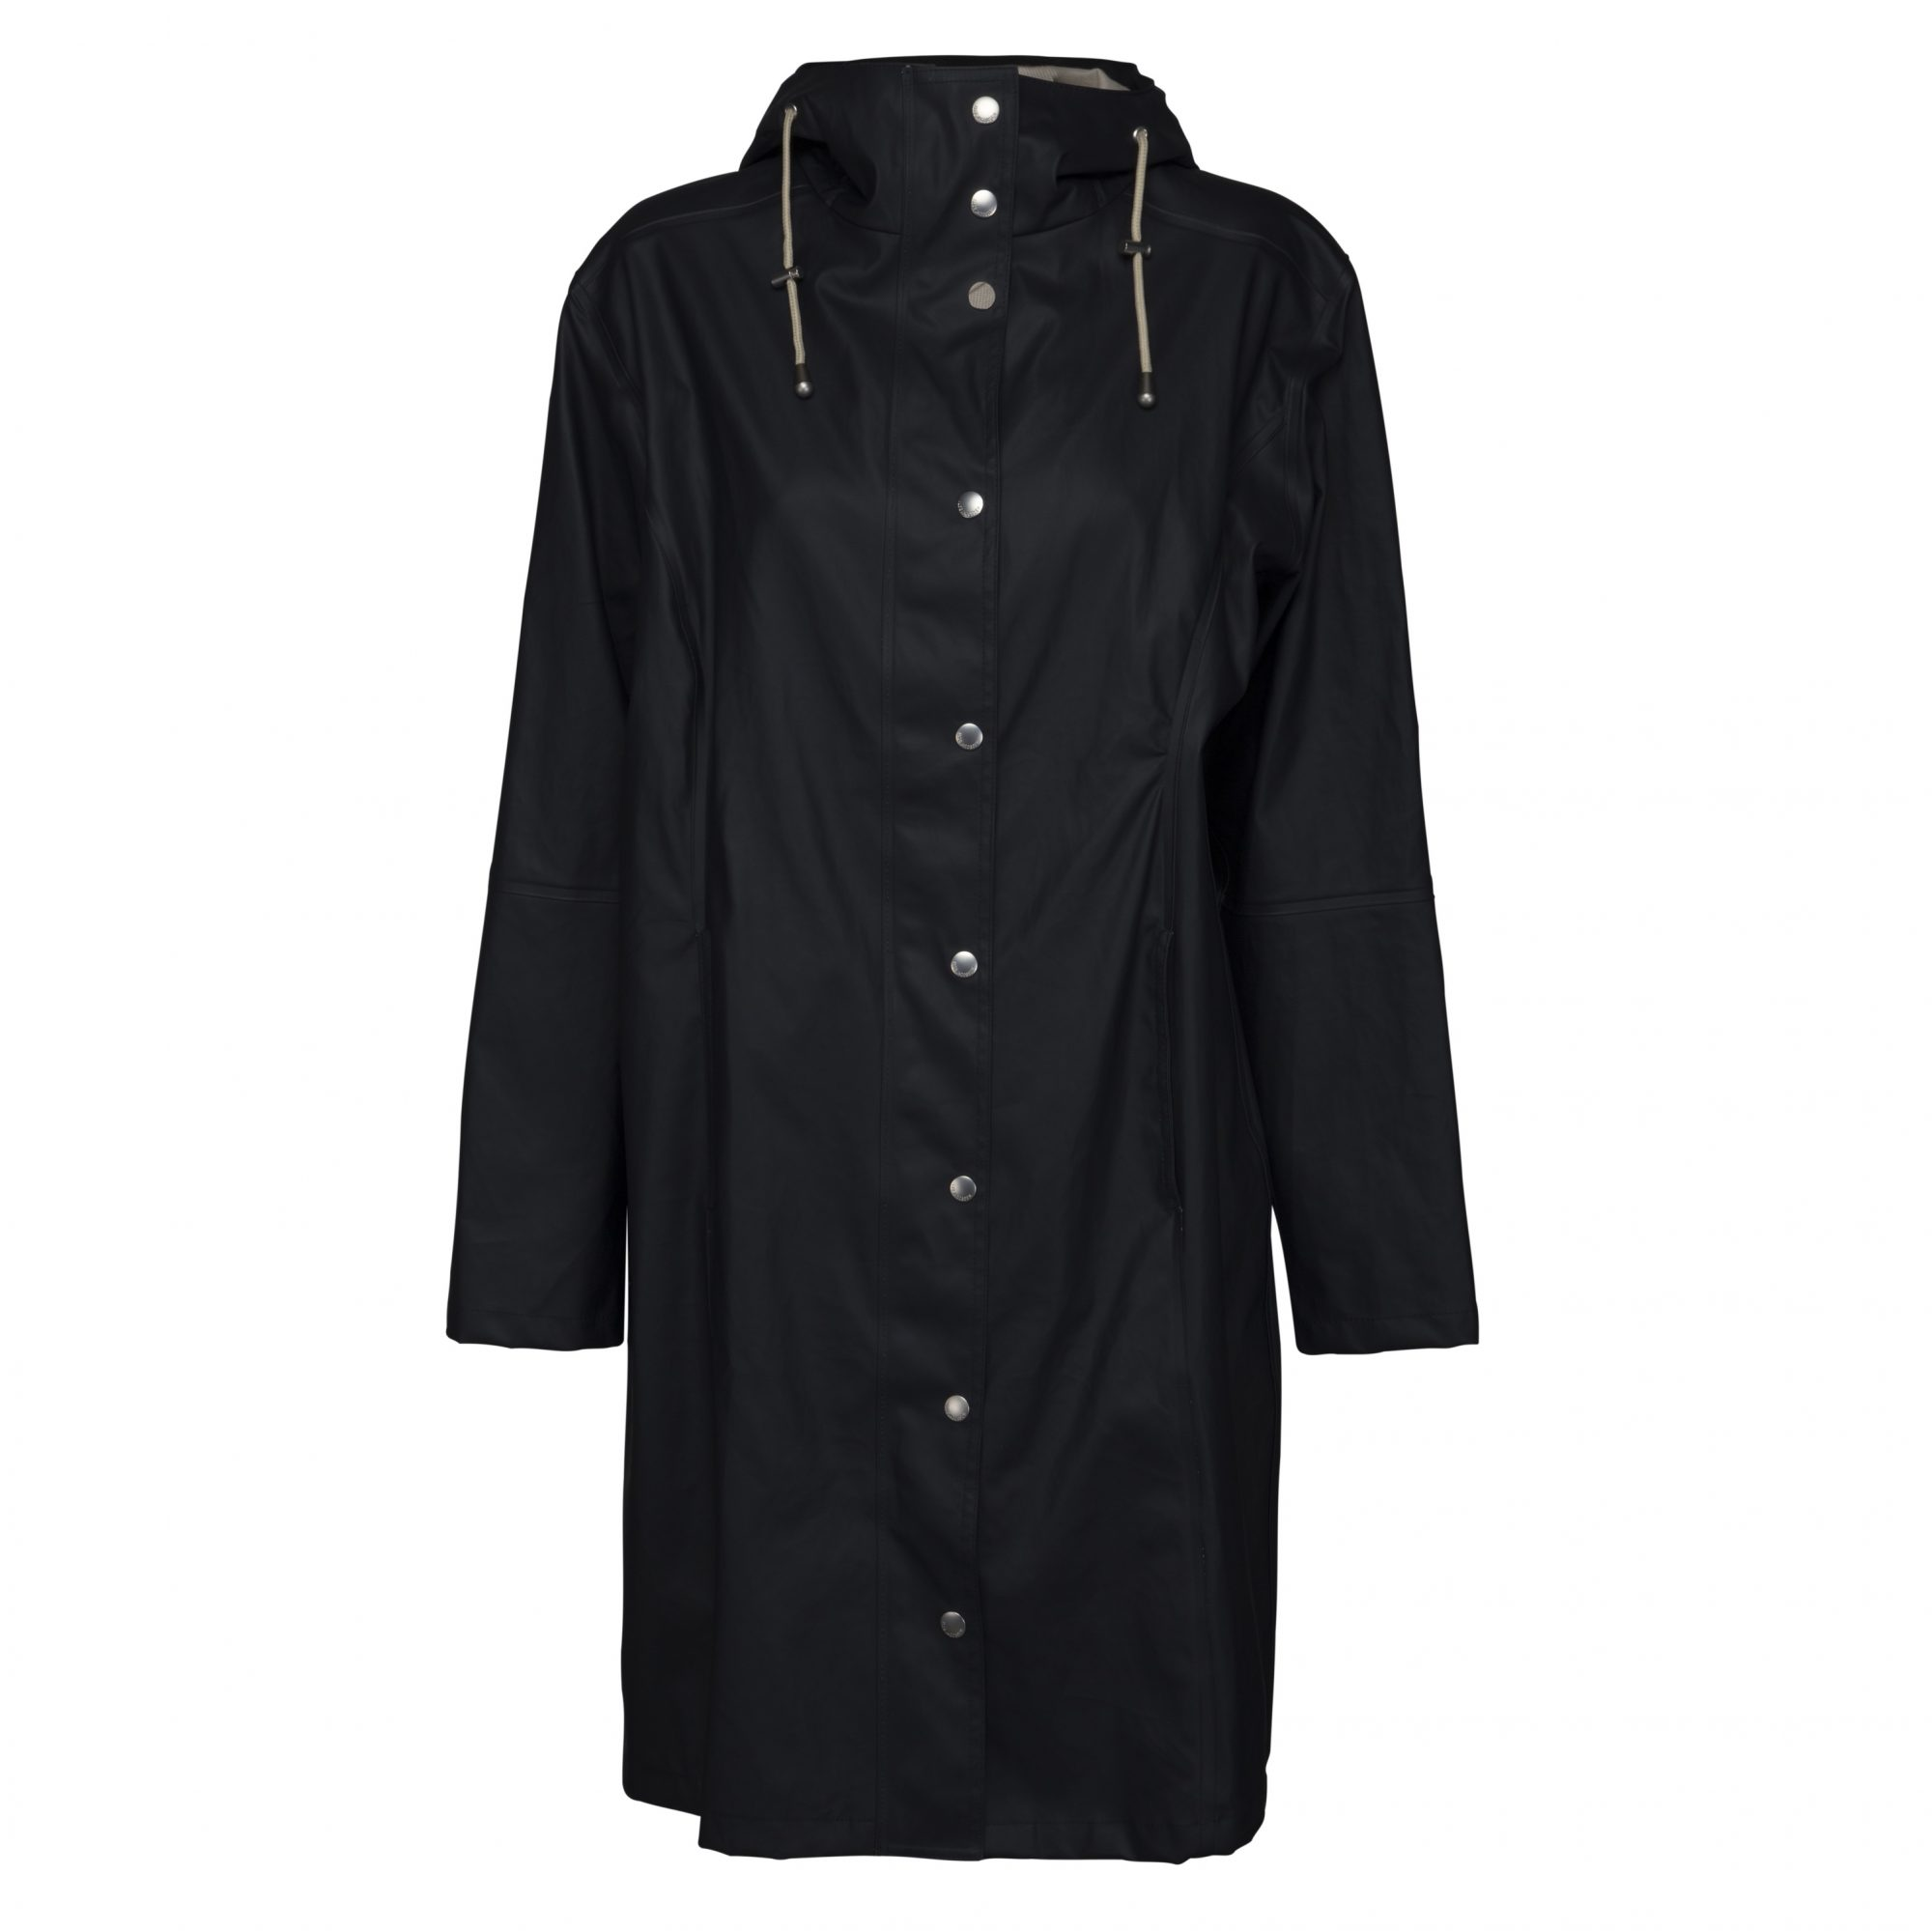 Ilse Jacobsen True Rain Raincoat (Long) - Indigo